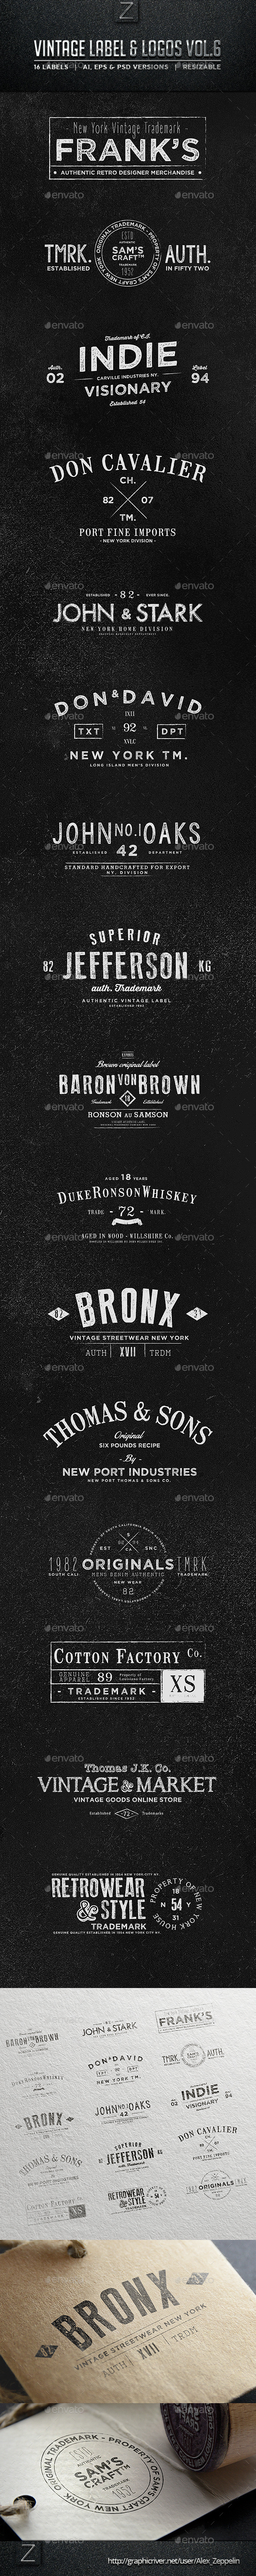 GraphicRiver Vintage Labels & Logos Vol.6 8974308